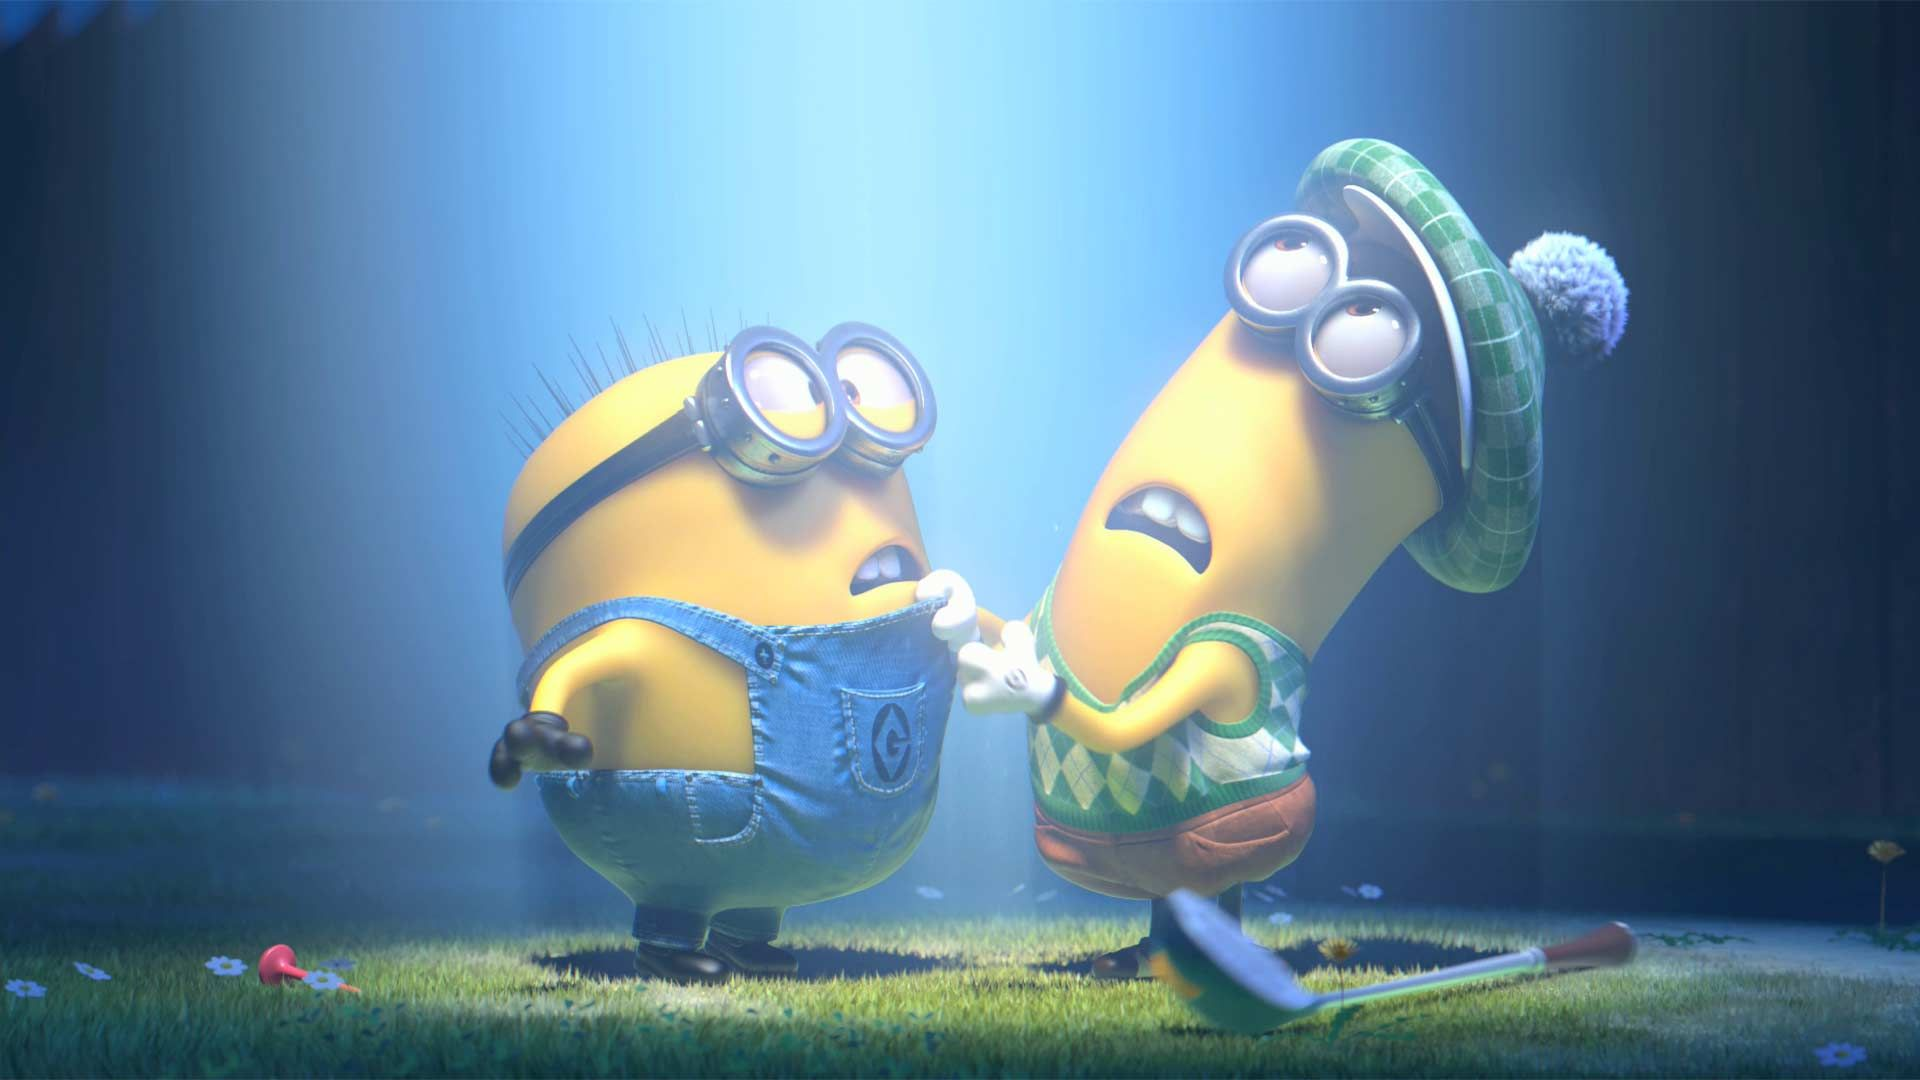 HD Despicable Me 2 Wallpapers & Desktop Backgrounds | Desktops | Mi villano favorito 2, Mi ...